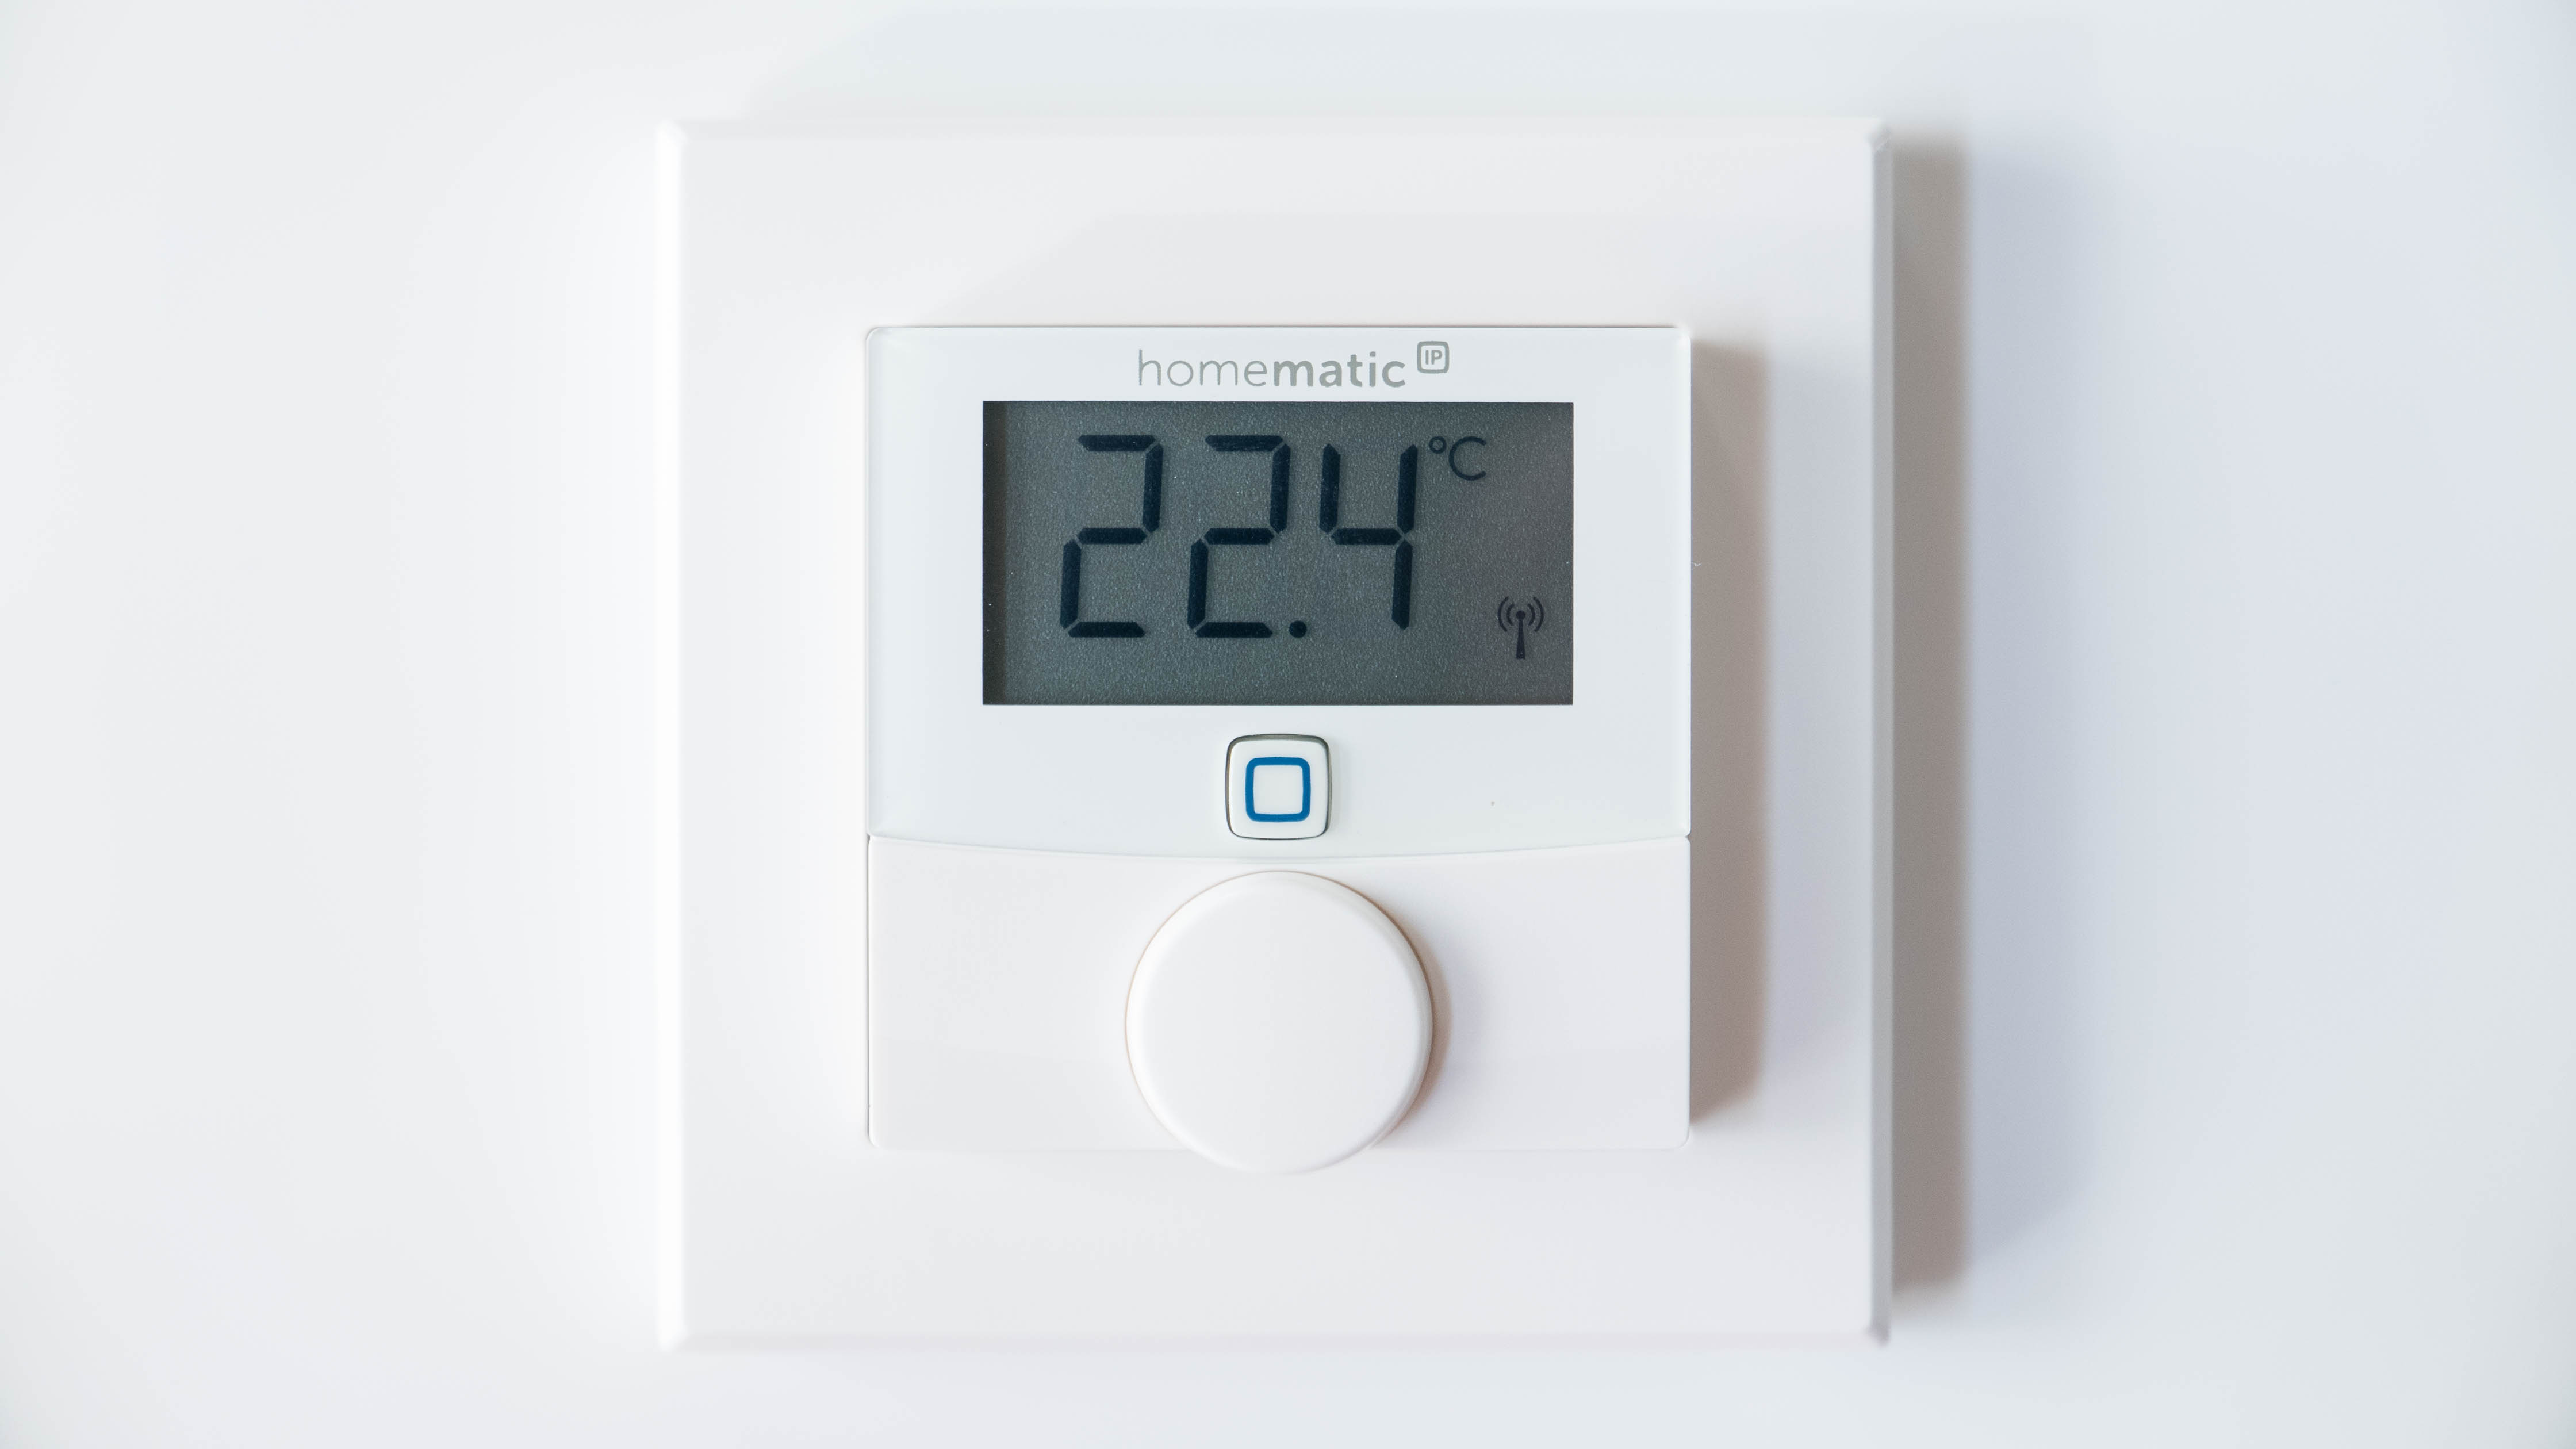 Homematic-IP-Wandthermostat-vorne